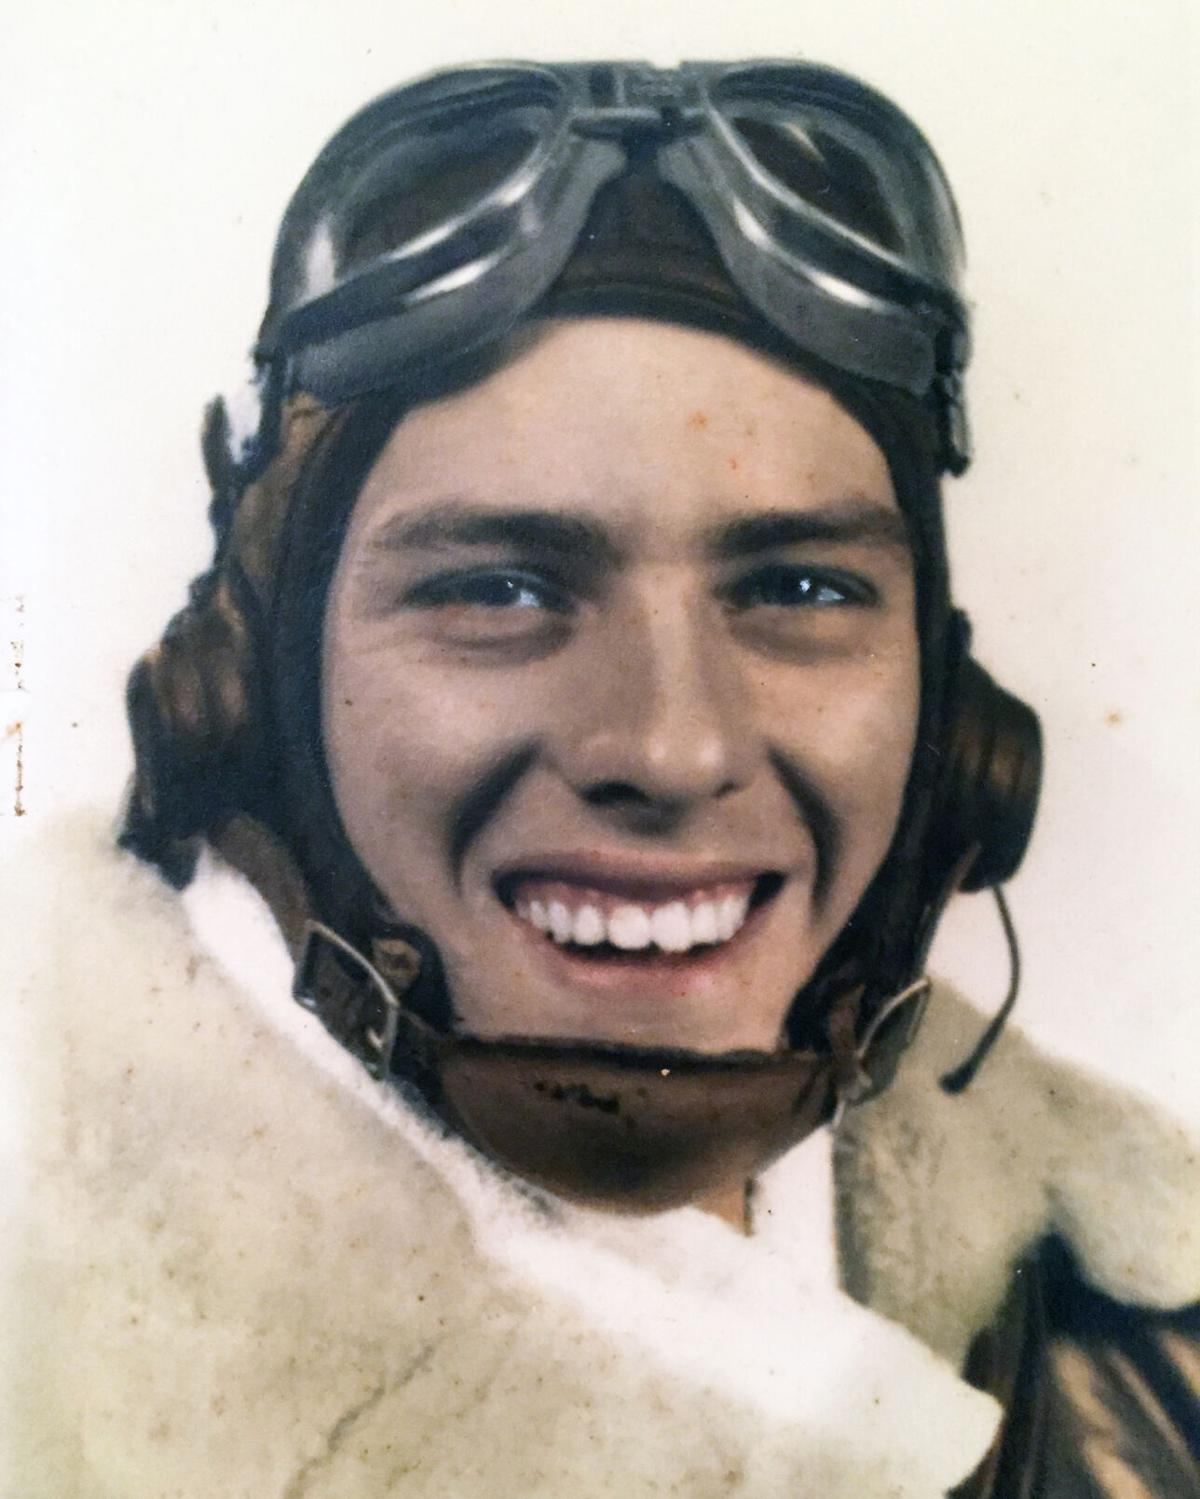 A young Marlow Jacobsen during his service in WWII.